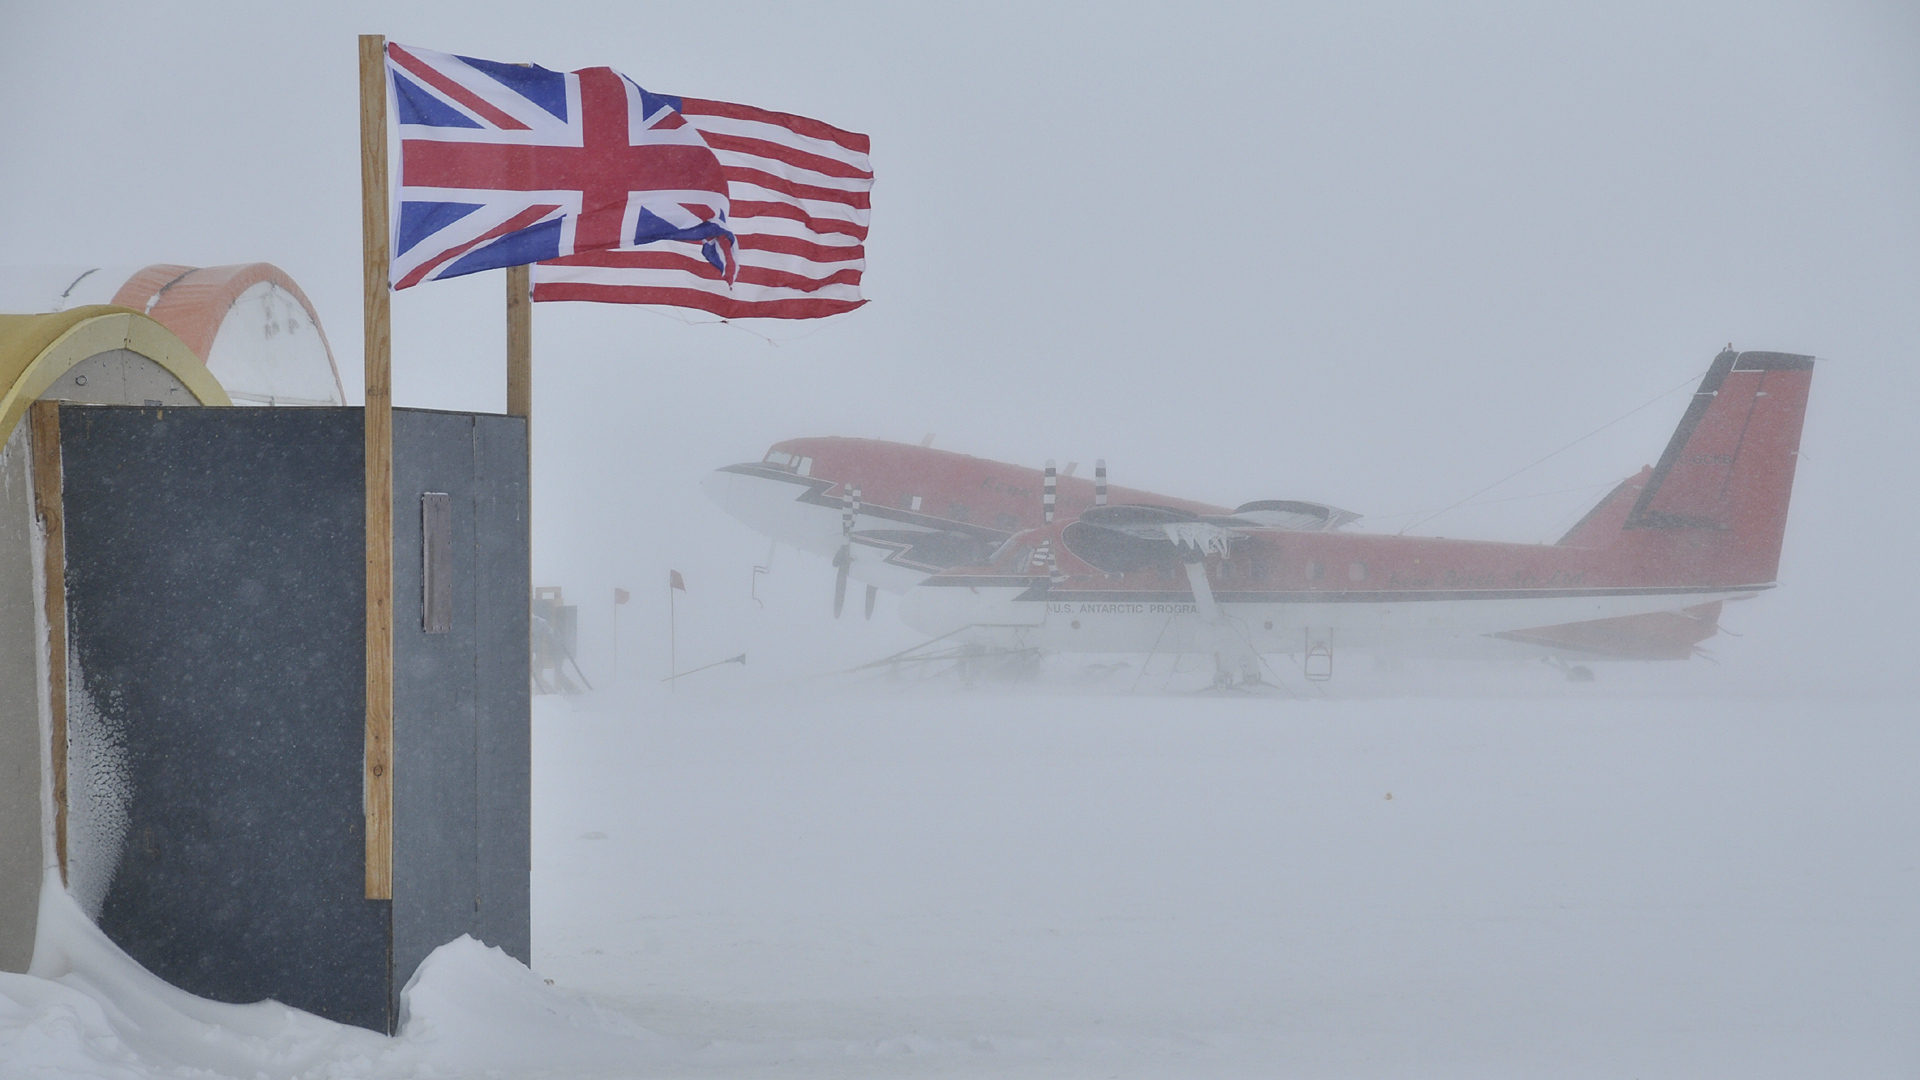 Plane seen through a blizzard on the ground